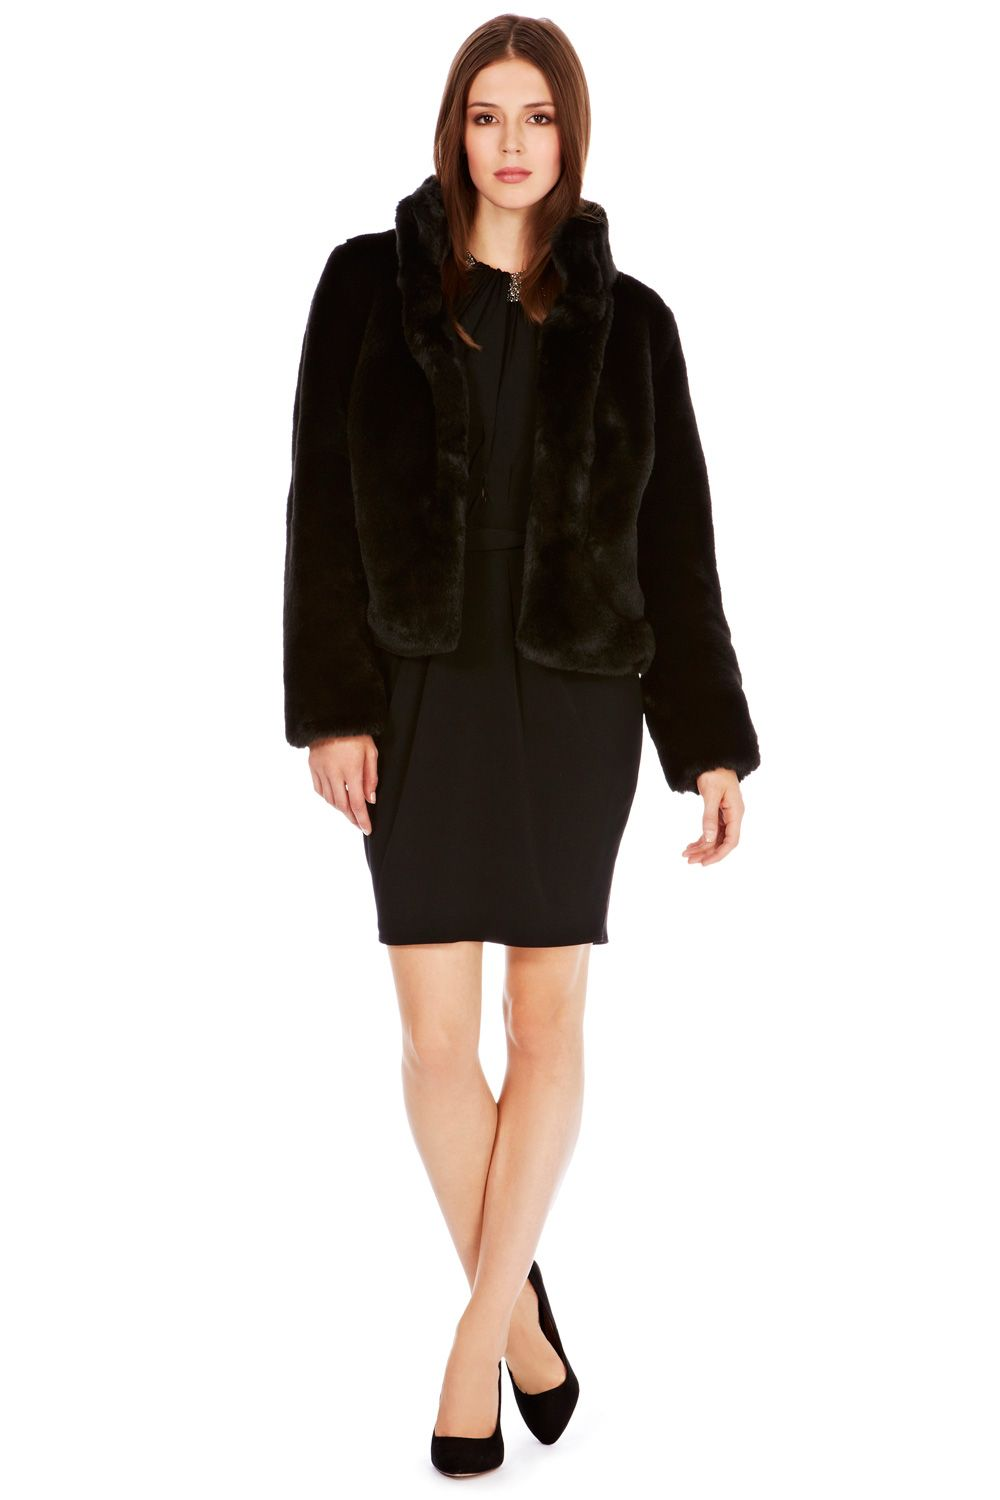 Alfine faux fur jacket